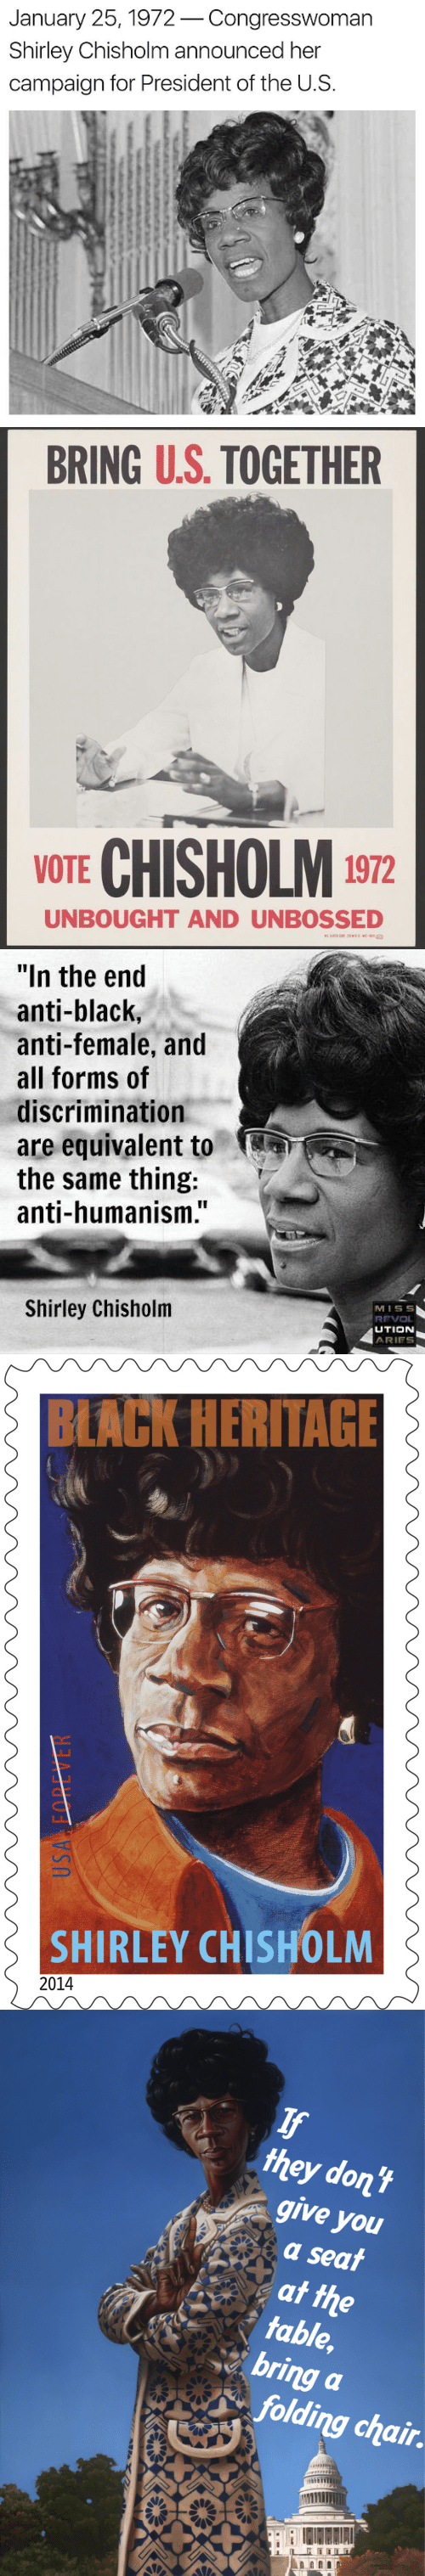 "humanism: January 25,1972Congresswoman  Shirley Chisholm announced her  campaign for President of the U.S.   BRING U.S. TOGETHER  e-  VOTE CHISHOLM 1972  UNBOUGHT AND UNBOSSED   ""In the end  anti-black,  anti-female, and  all forms of  discrimination  are equivalent to  the same thing:  anti-humanism.""  Shirley Chisholm  MISS5  UTION  ARIES   BLACK HERITAGE  SHIRLEY CHISHOLM  2014   they dont  give you  a seai  table,  bring a  folding chair"